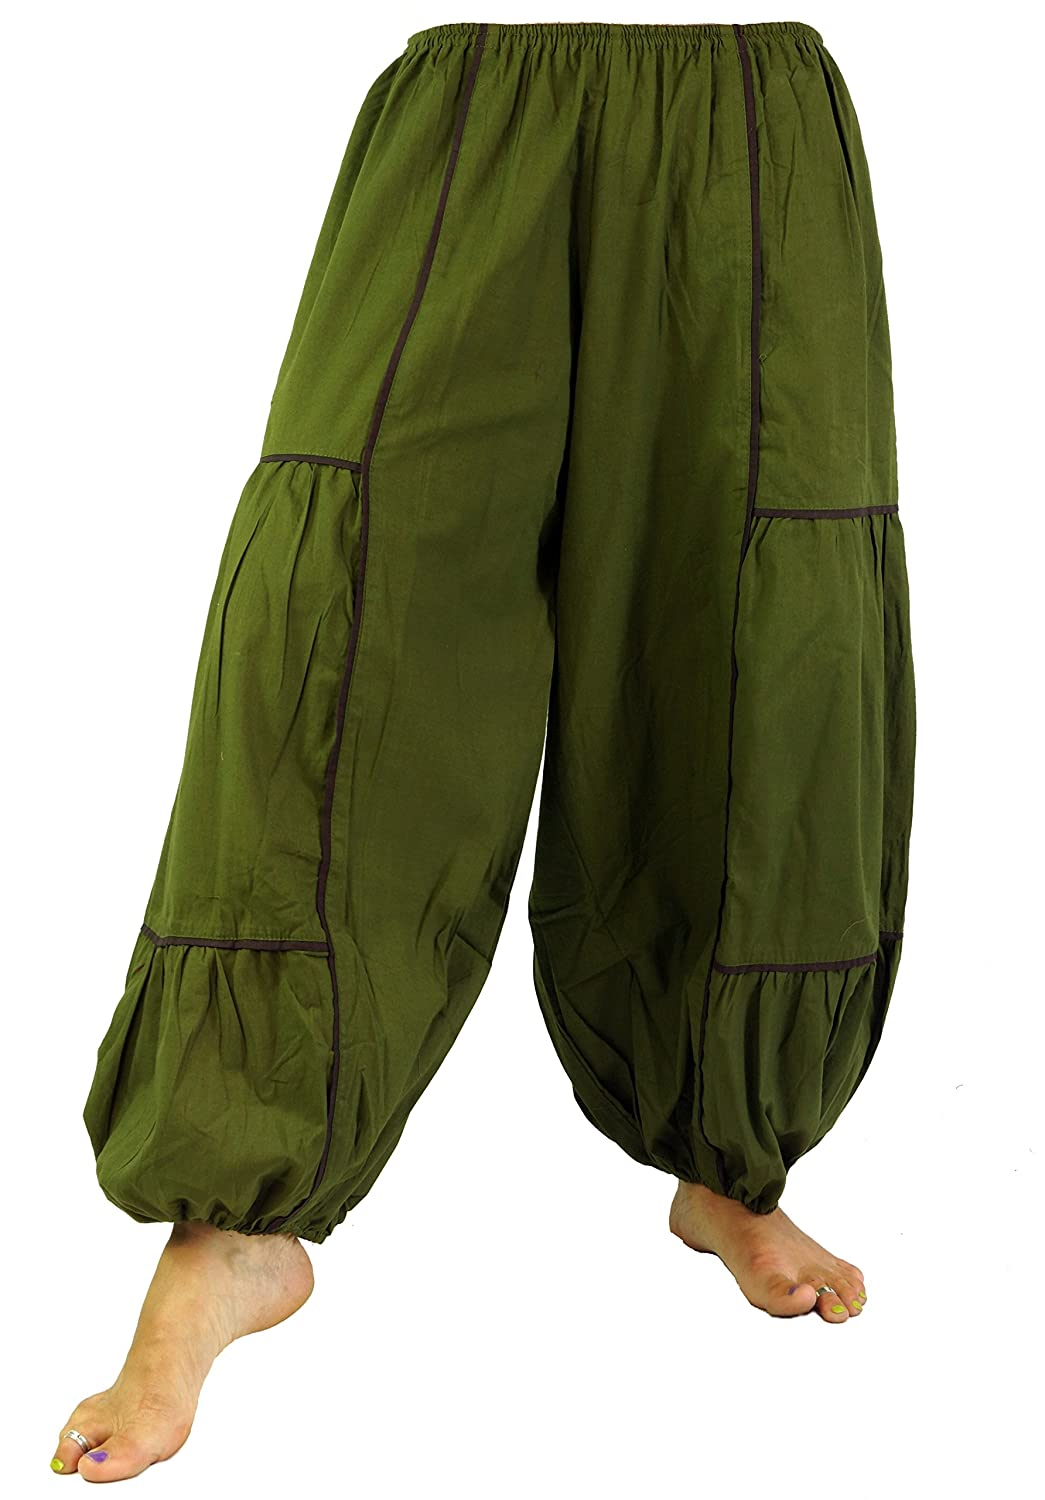 Ali baba trouser alibaba pant bloomers / Bloomers & harem trousers